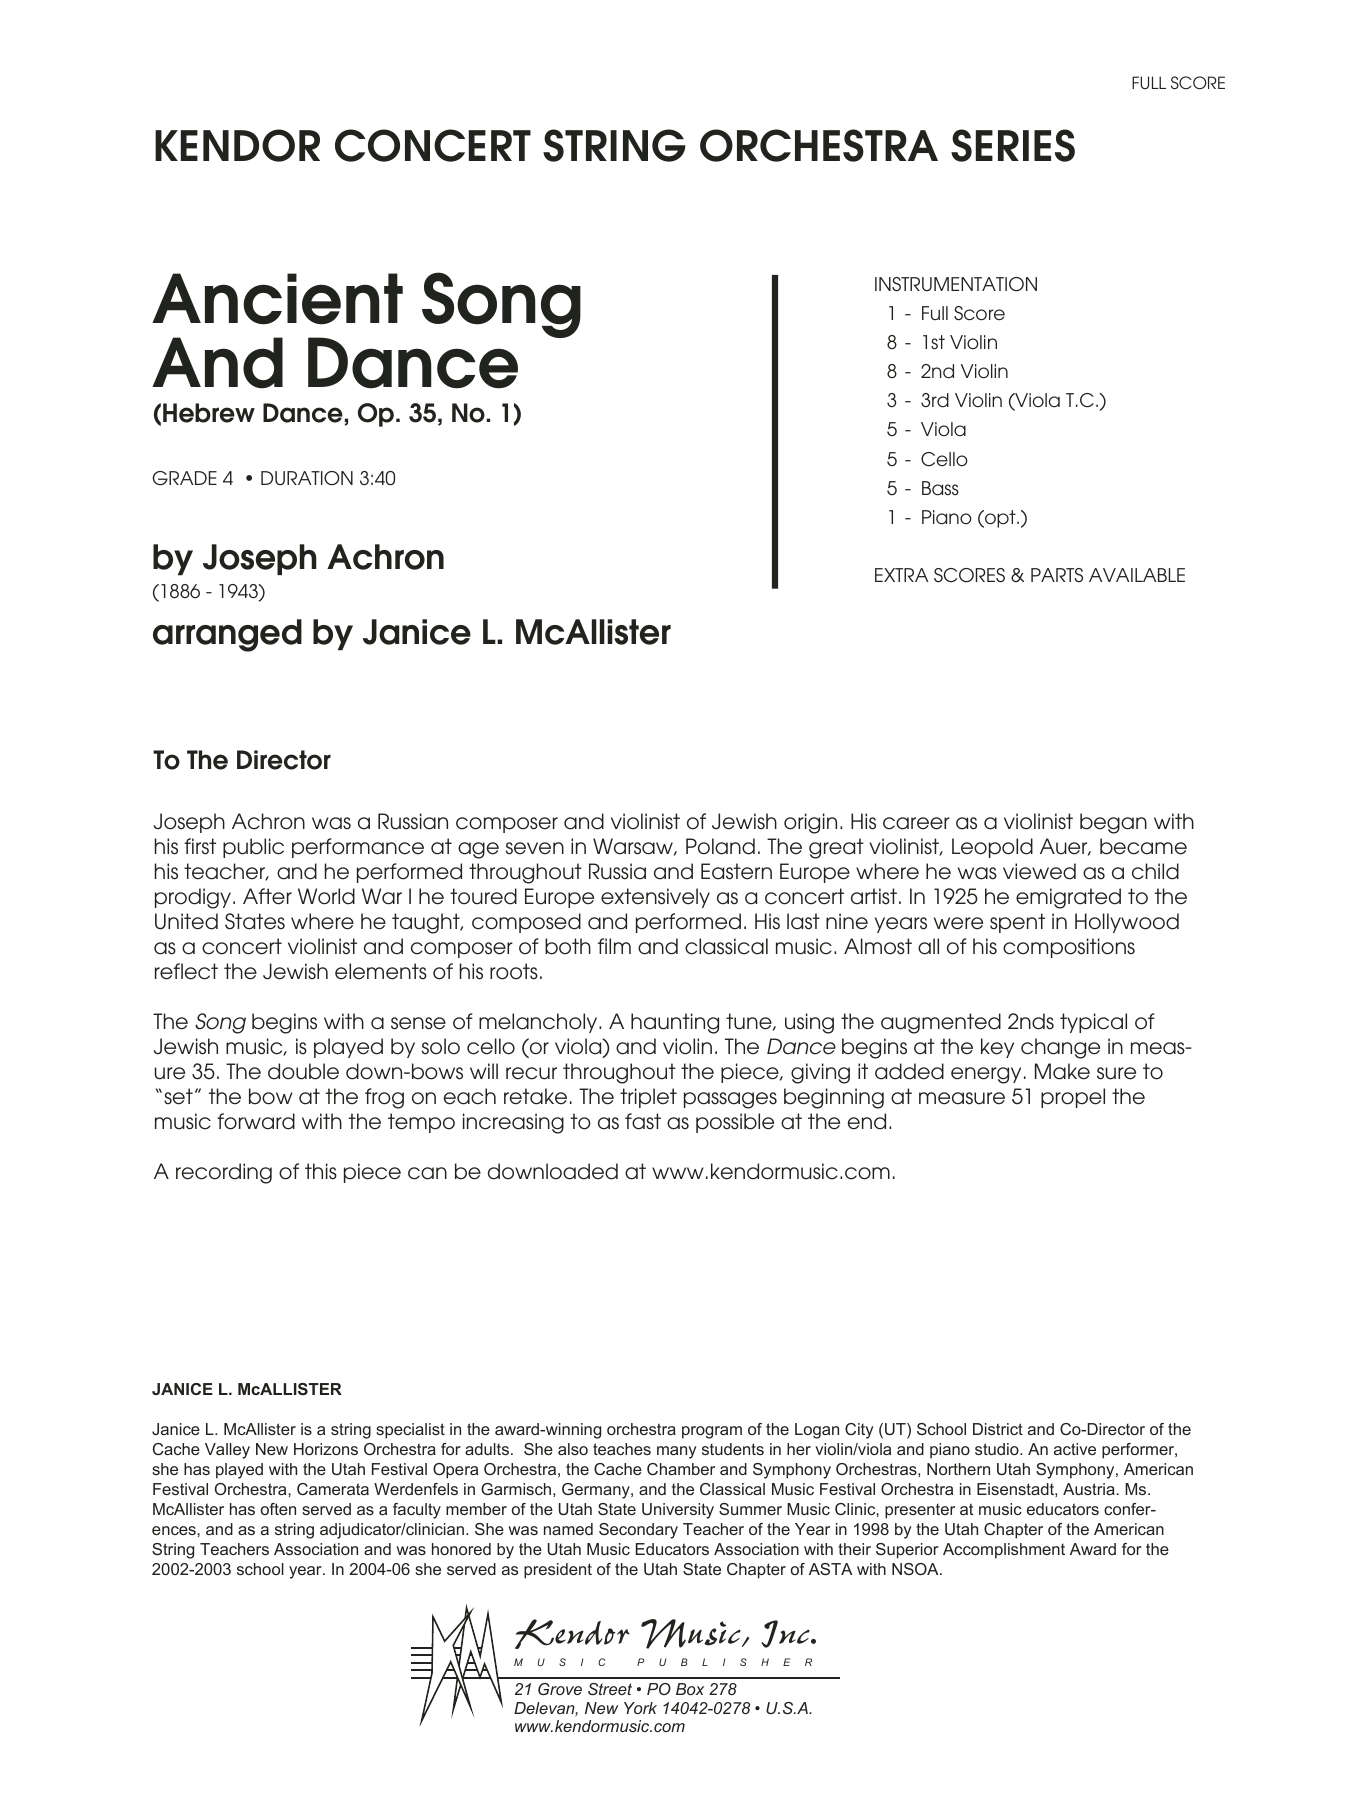 Ancient Song And Dance (Hebrew Dance, Op. 35, No. 1) - Full Score